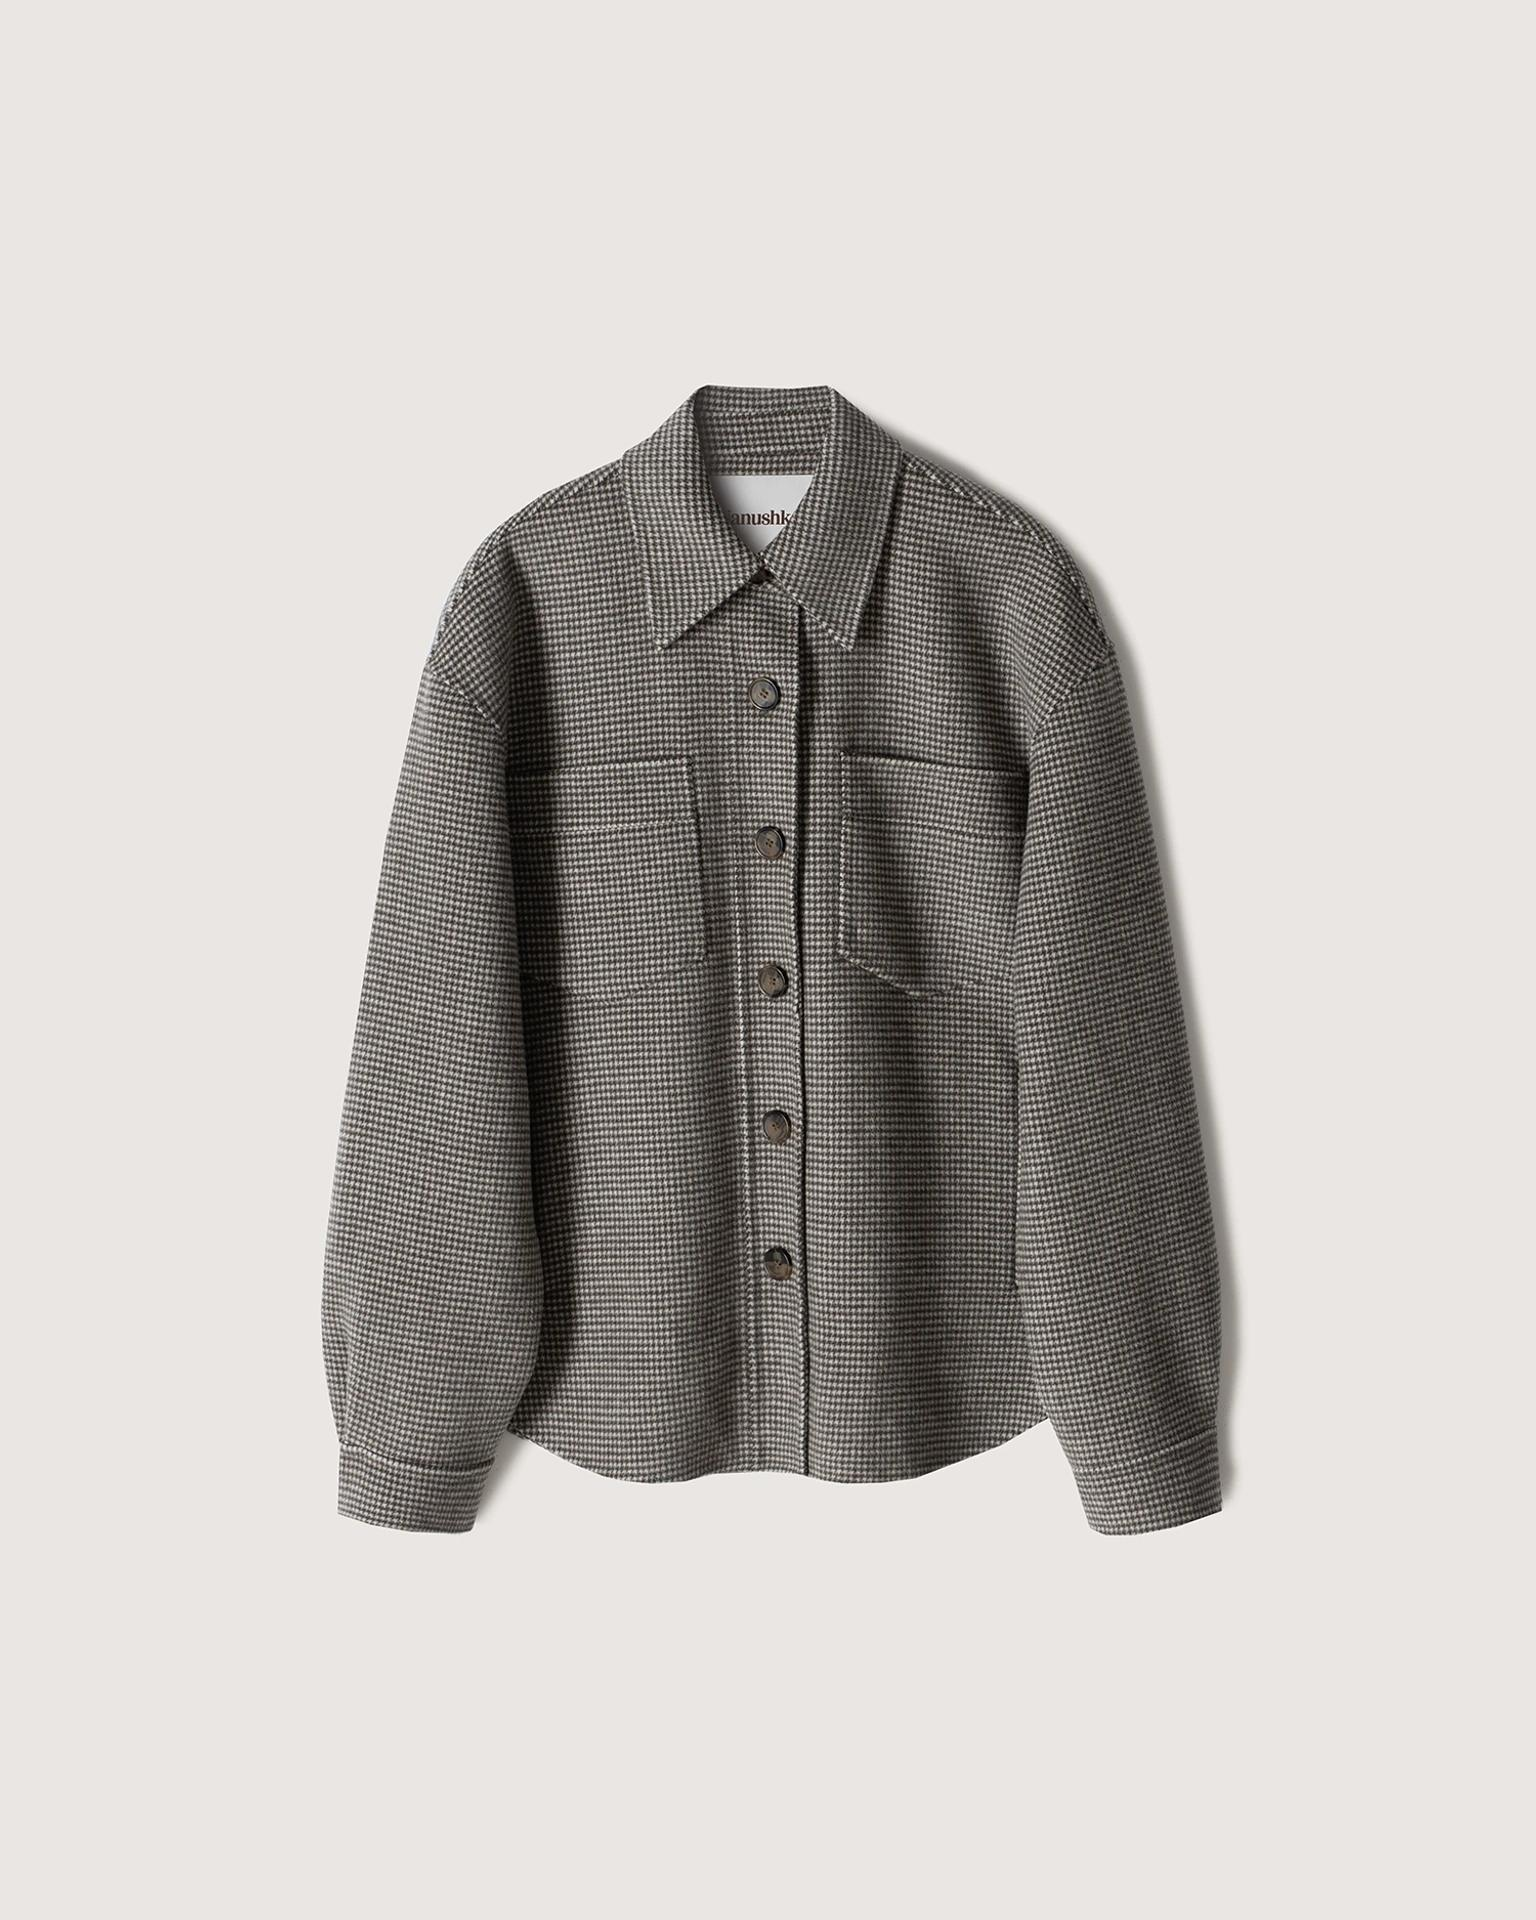 PERTH - Double wool jacket - Green houndstooth 4